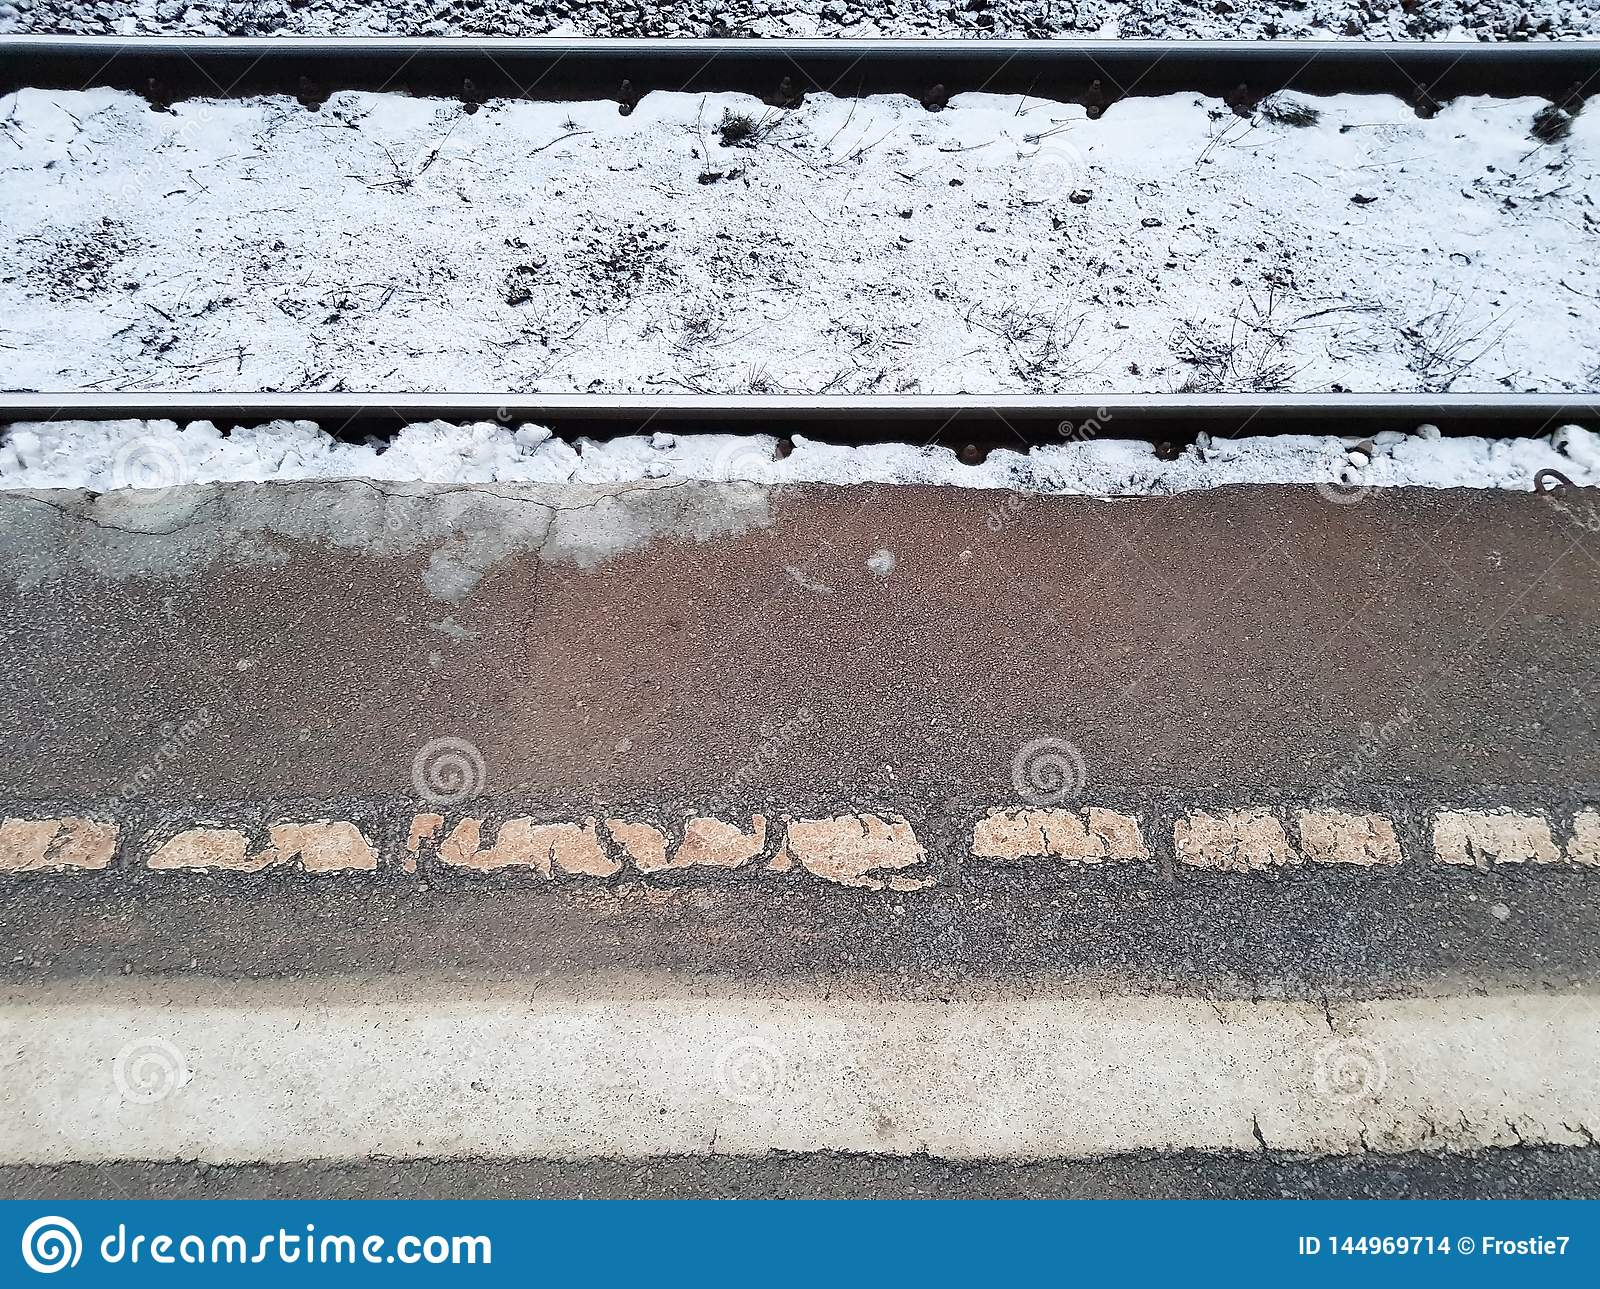 The rails and the platform. Winter